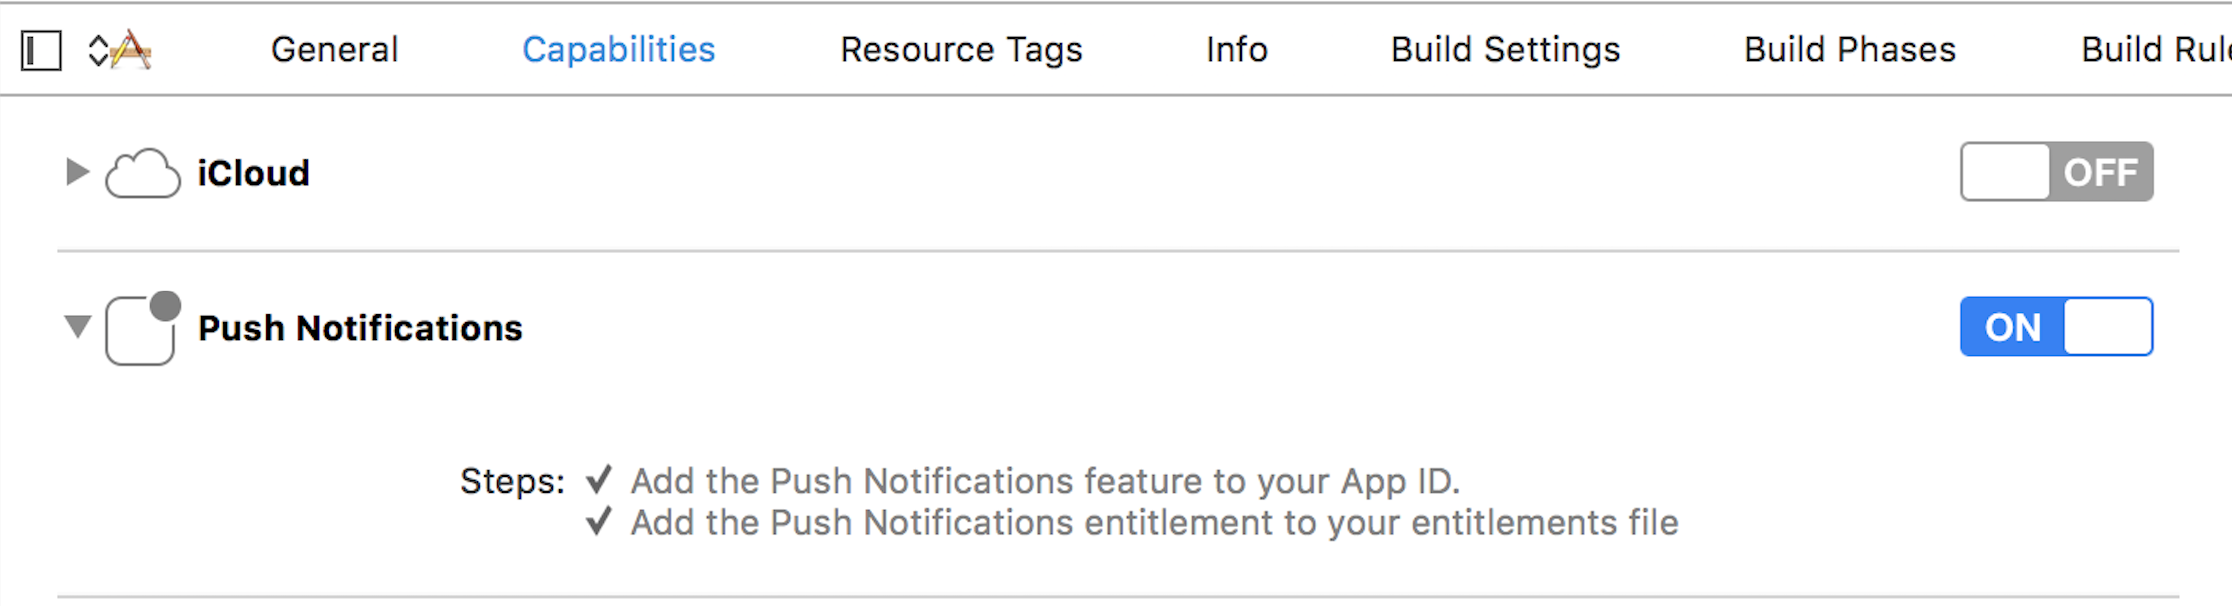 Build a ride sharing iOS app with push notifications